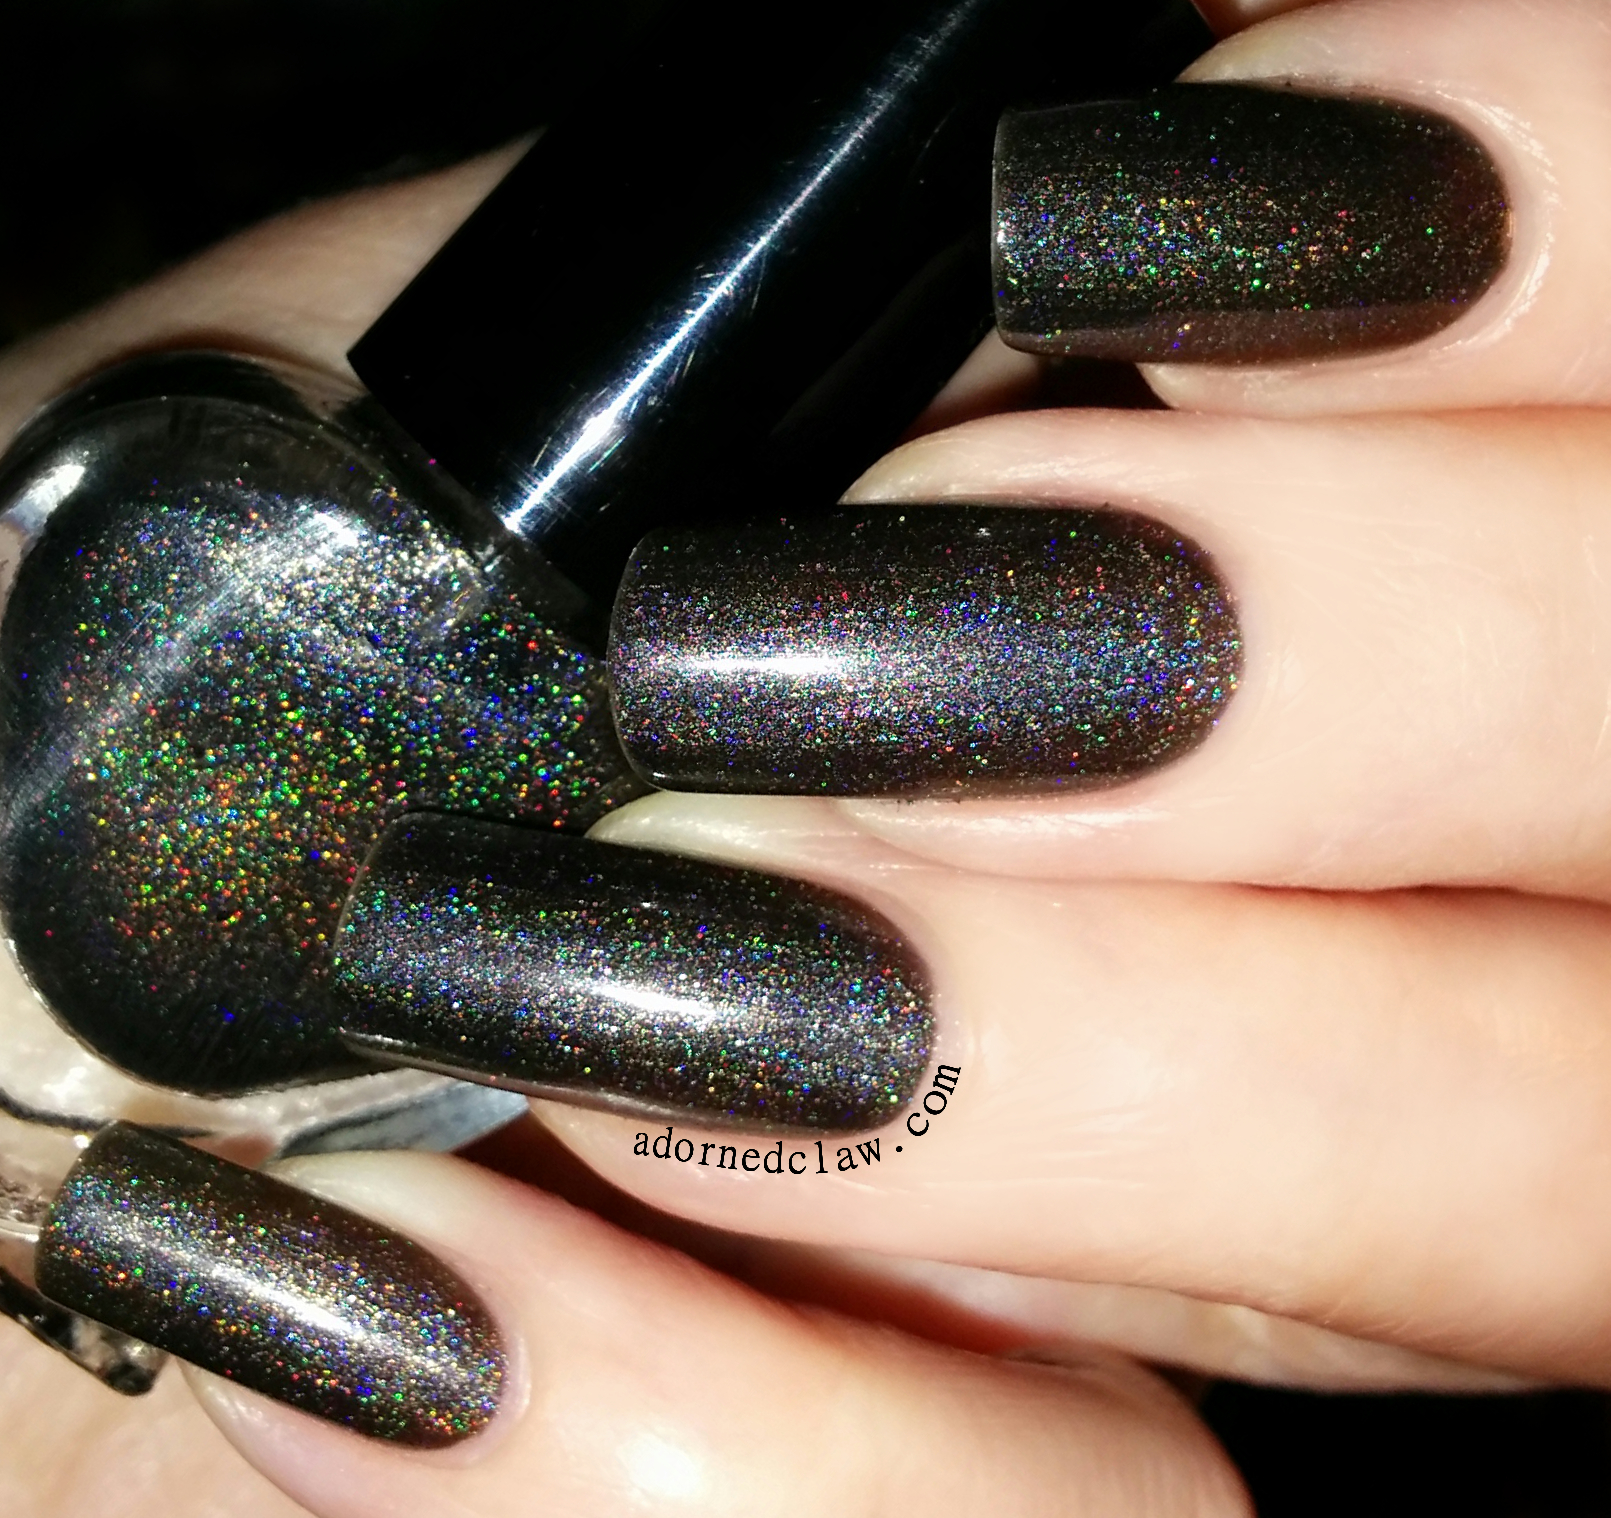 Hologram Silvers: The Adorned Claw